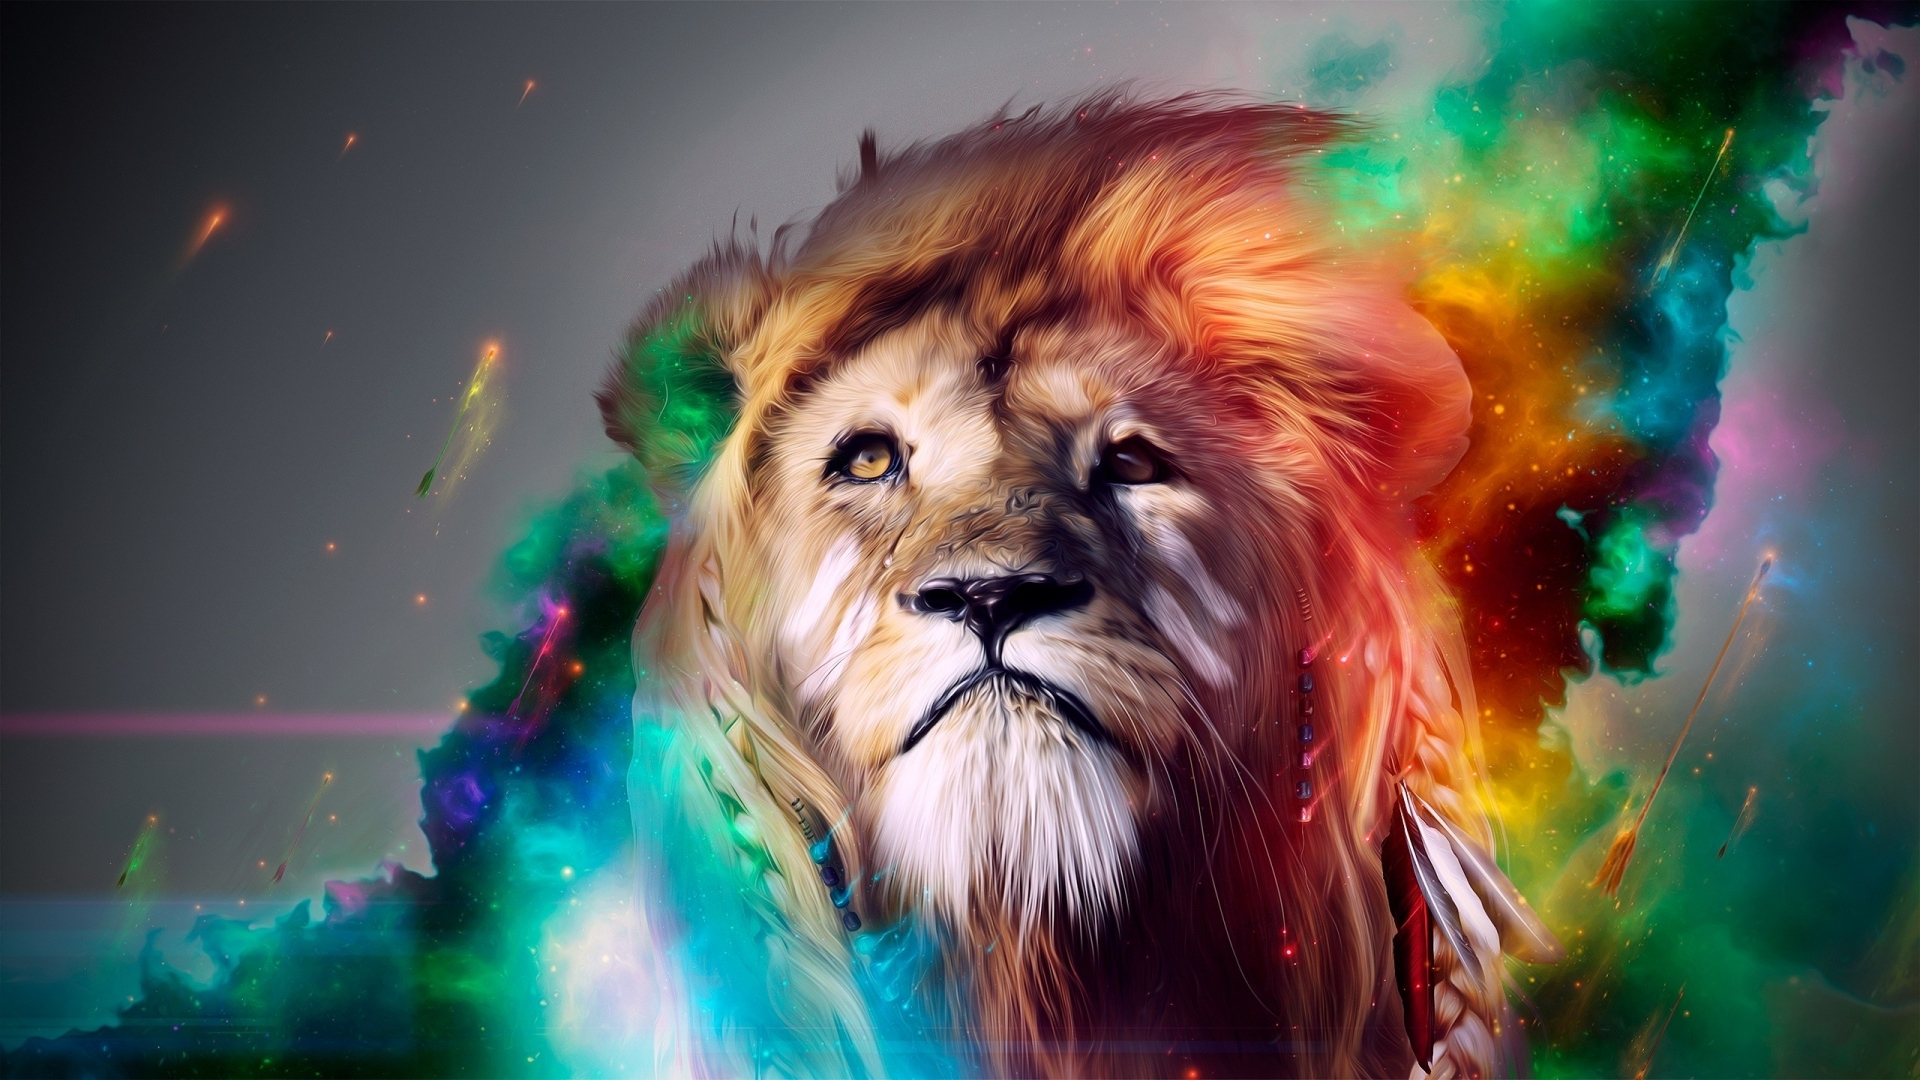 31158 download wallpaper Animals, Art Photo, Lions screensavers and pictures for free